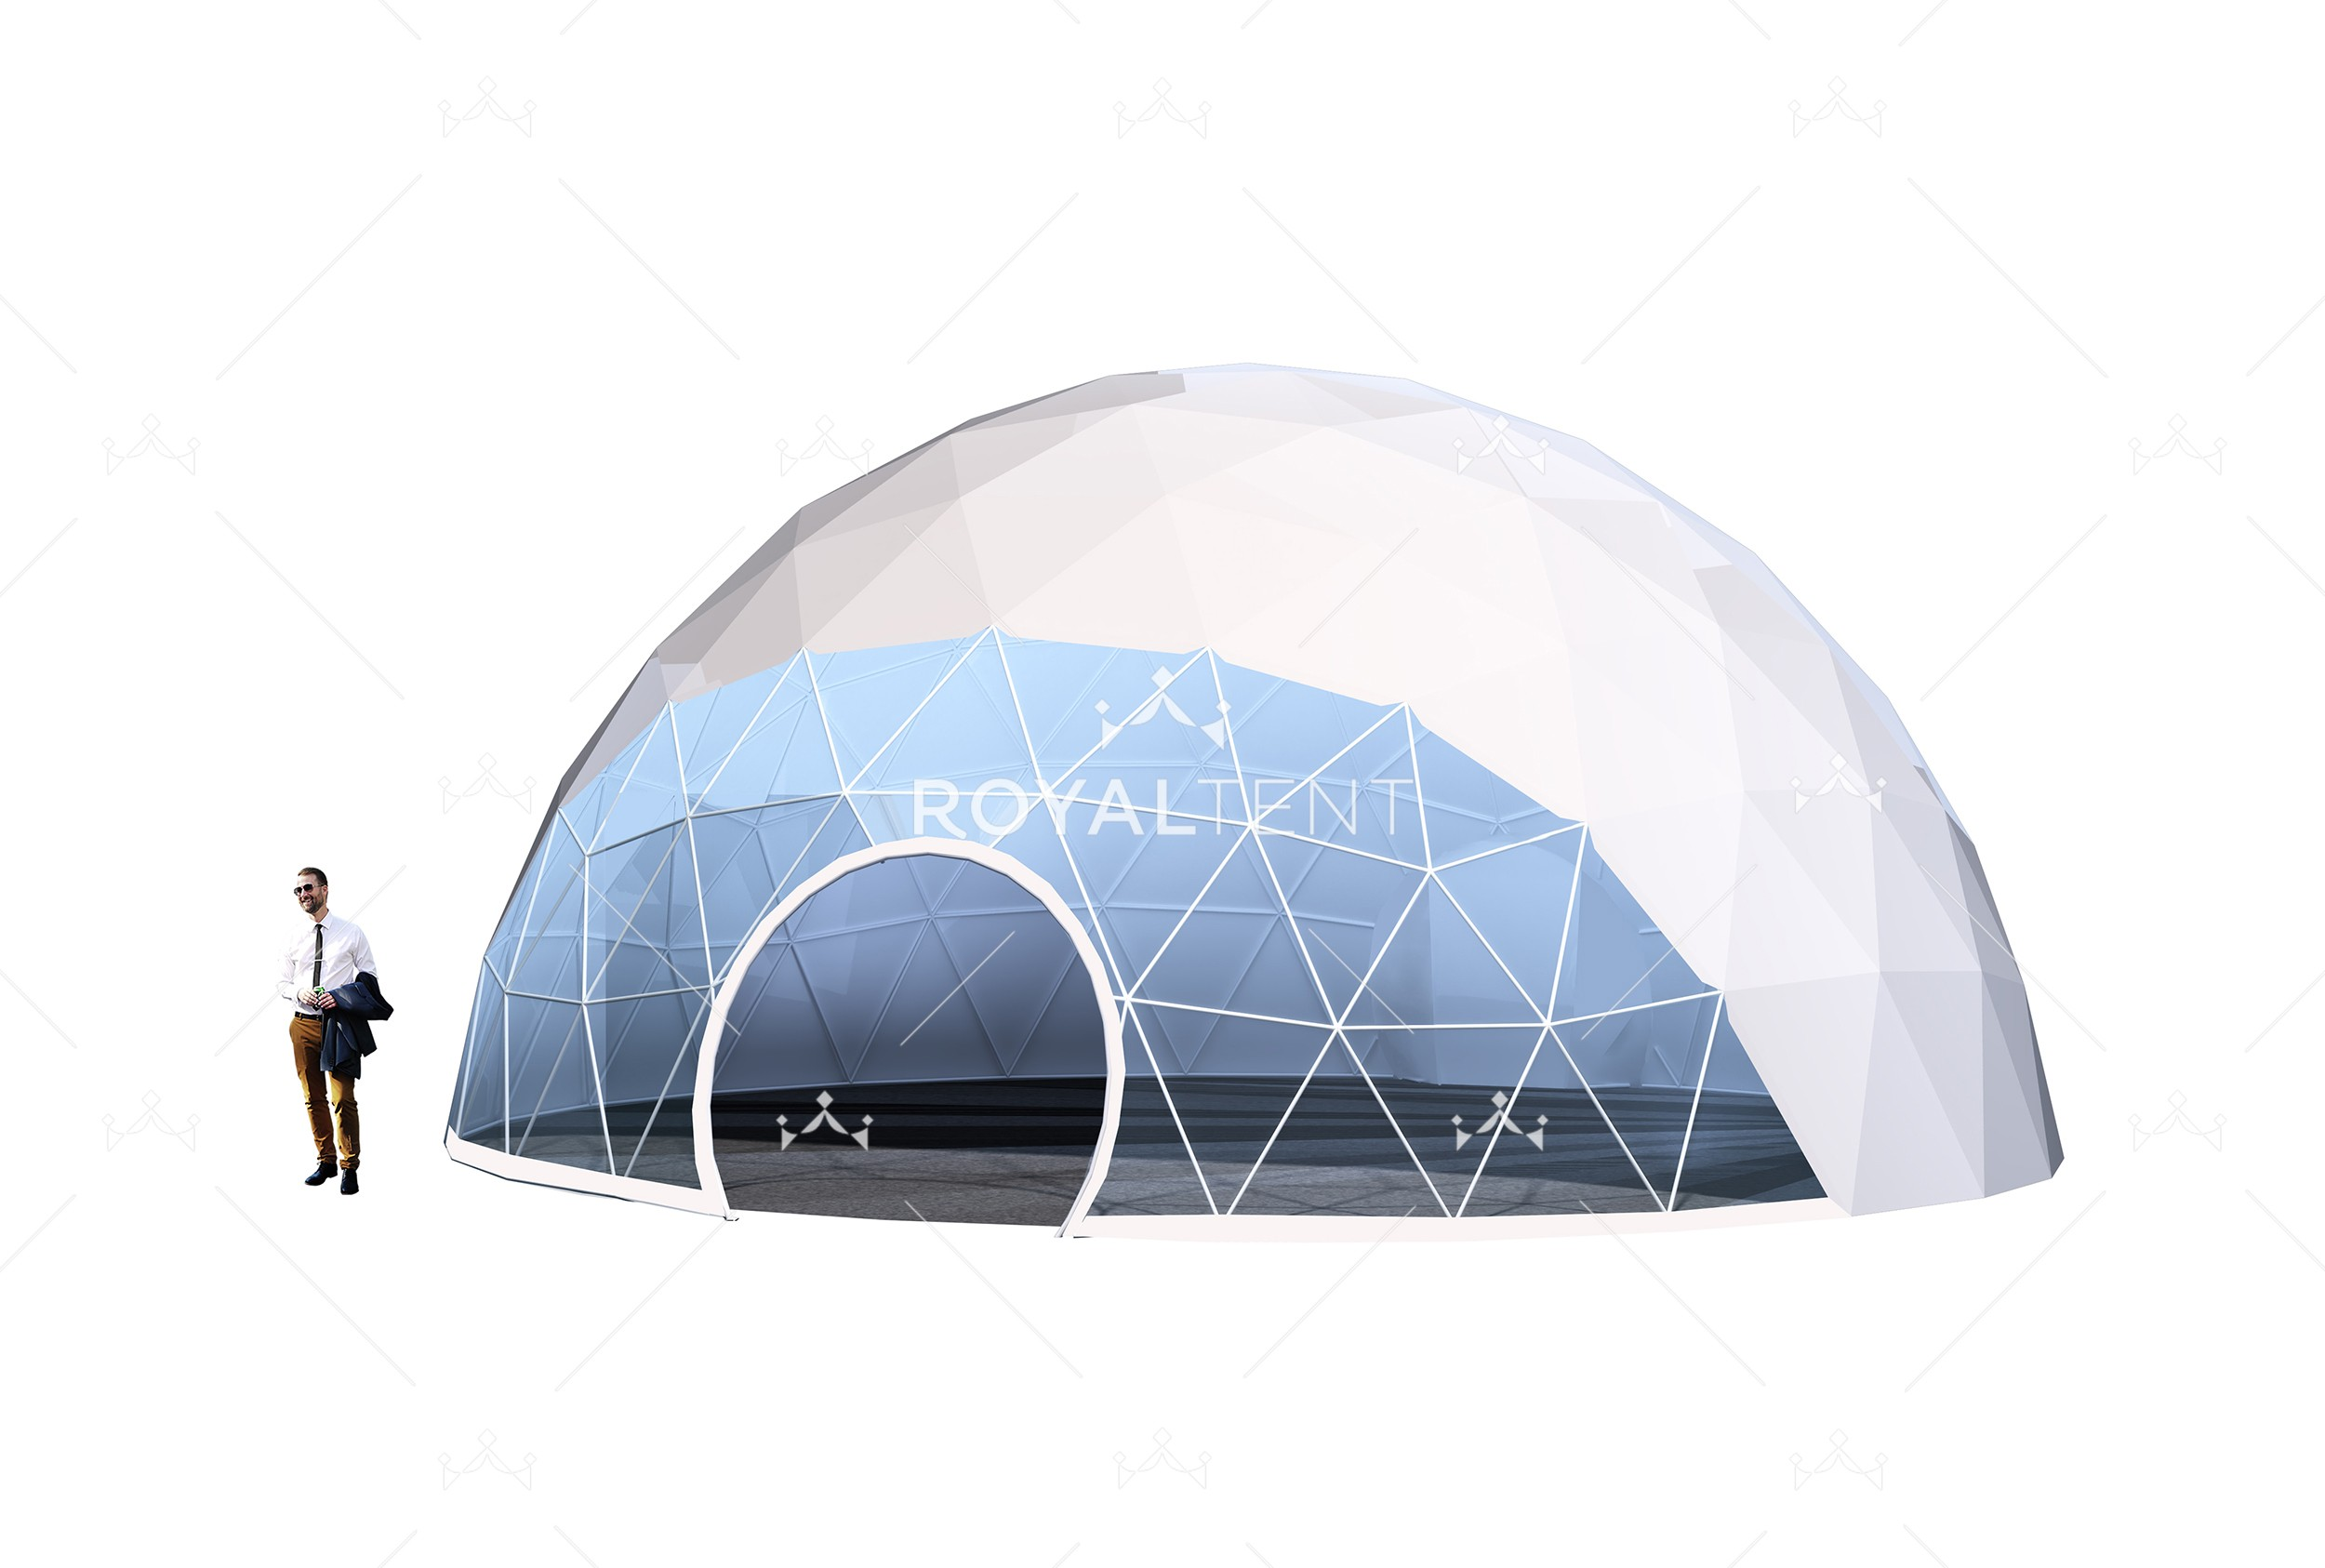 https://royaltent.me/houses_images/tent4_3_200111100338.jpg